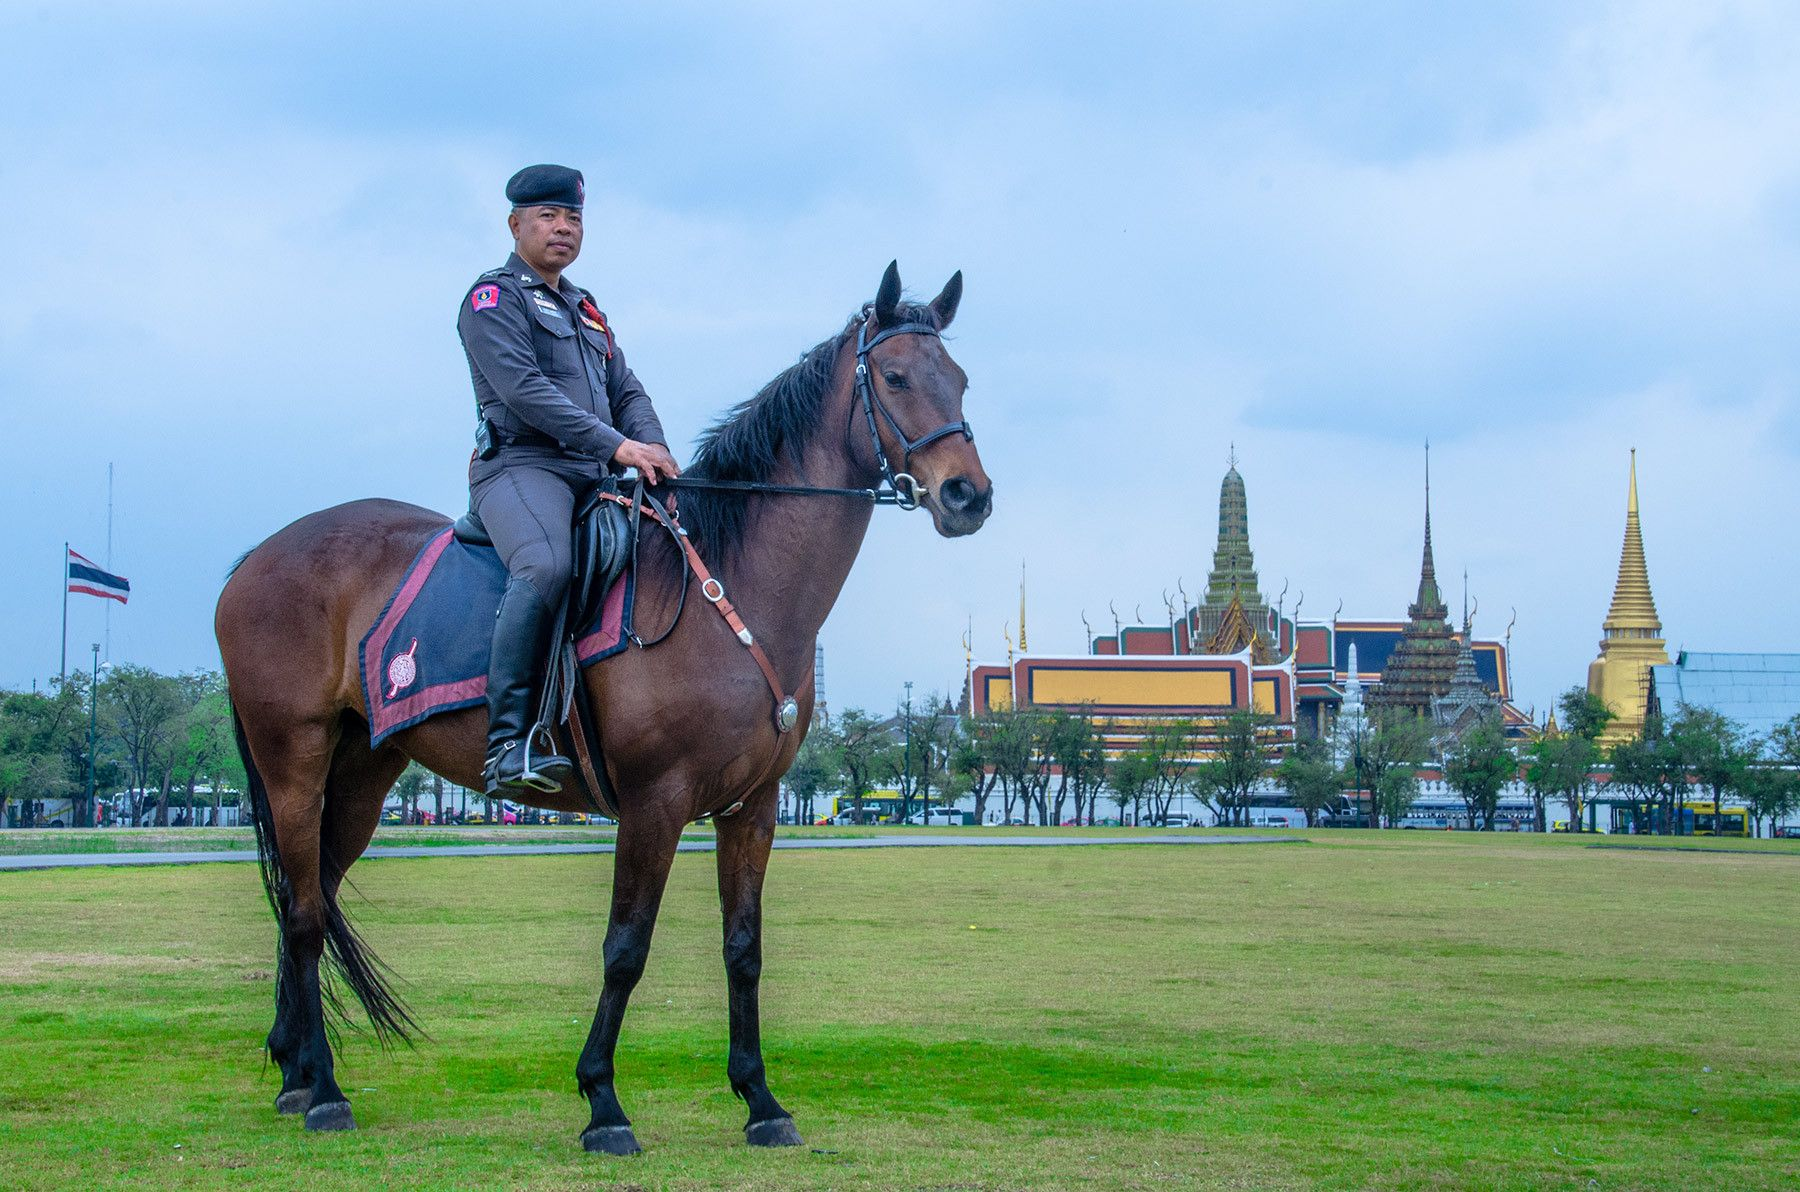 Policeman on Horseback, Field of Kings, Bangkok, Thailand